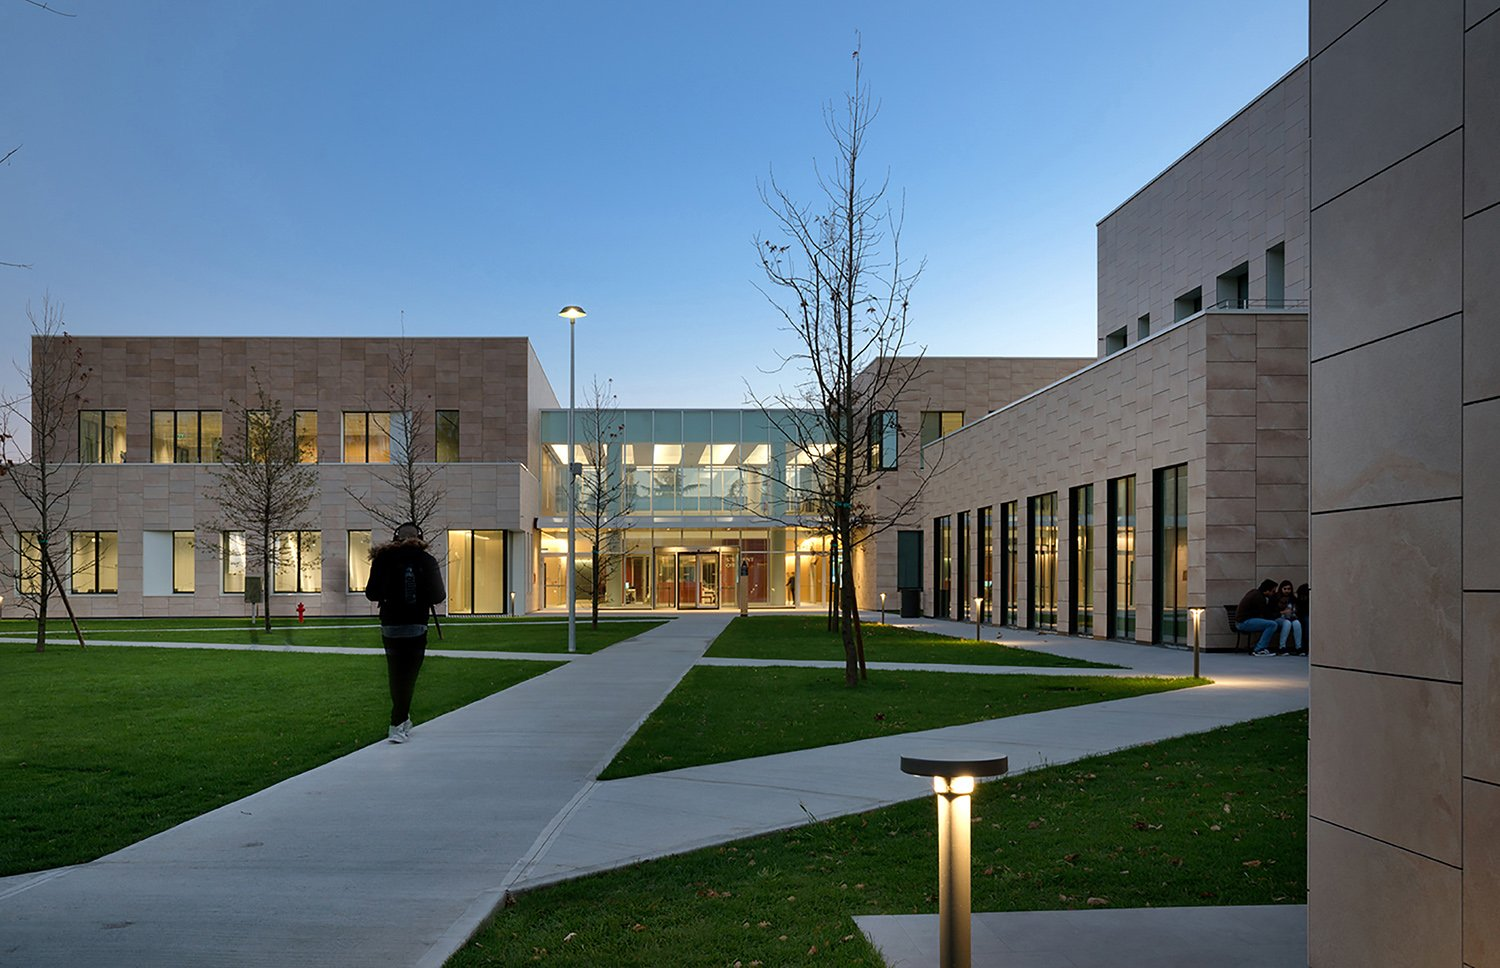 View of the Didactic center from the Campus courtyard Andrea Martiradonna